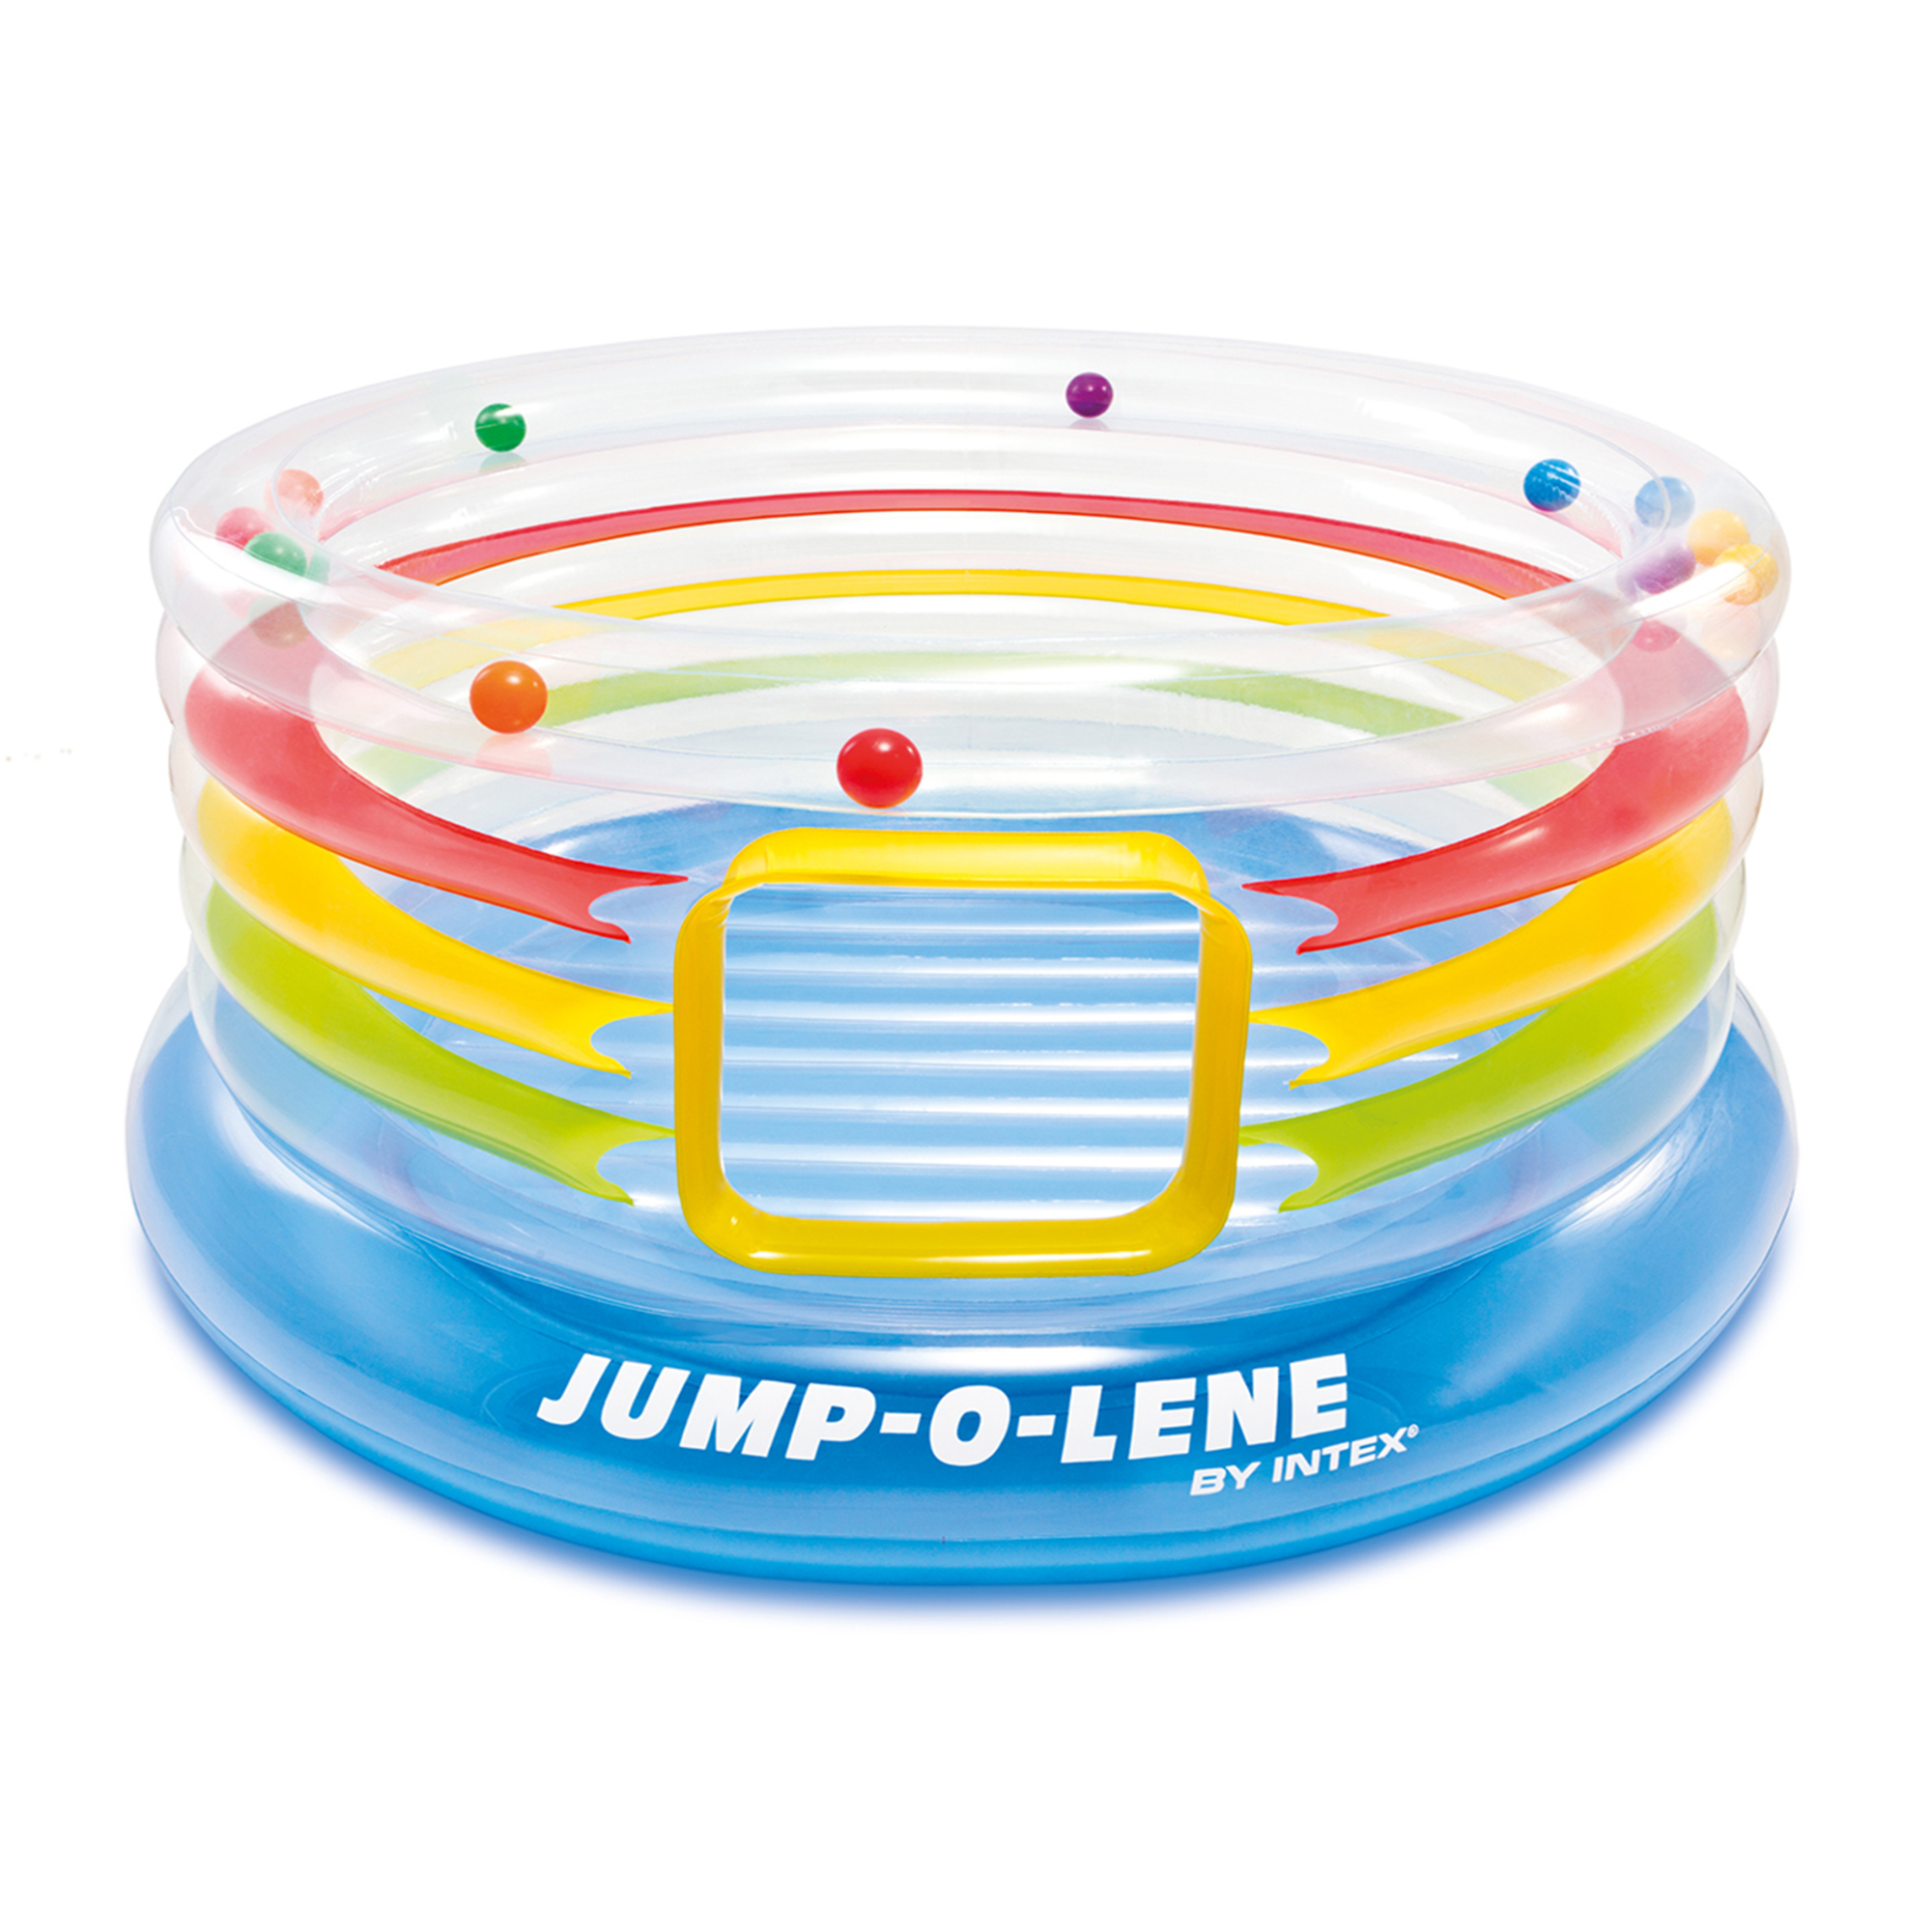 Intex - Jump-o-Lene Transparent Ring Bounce